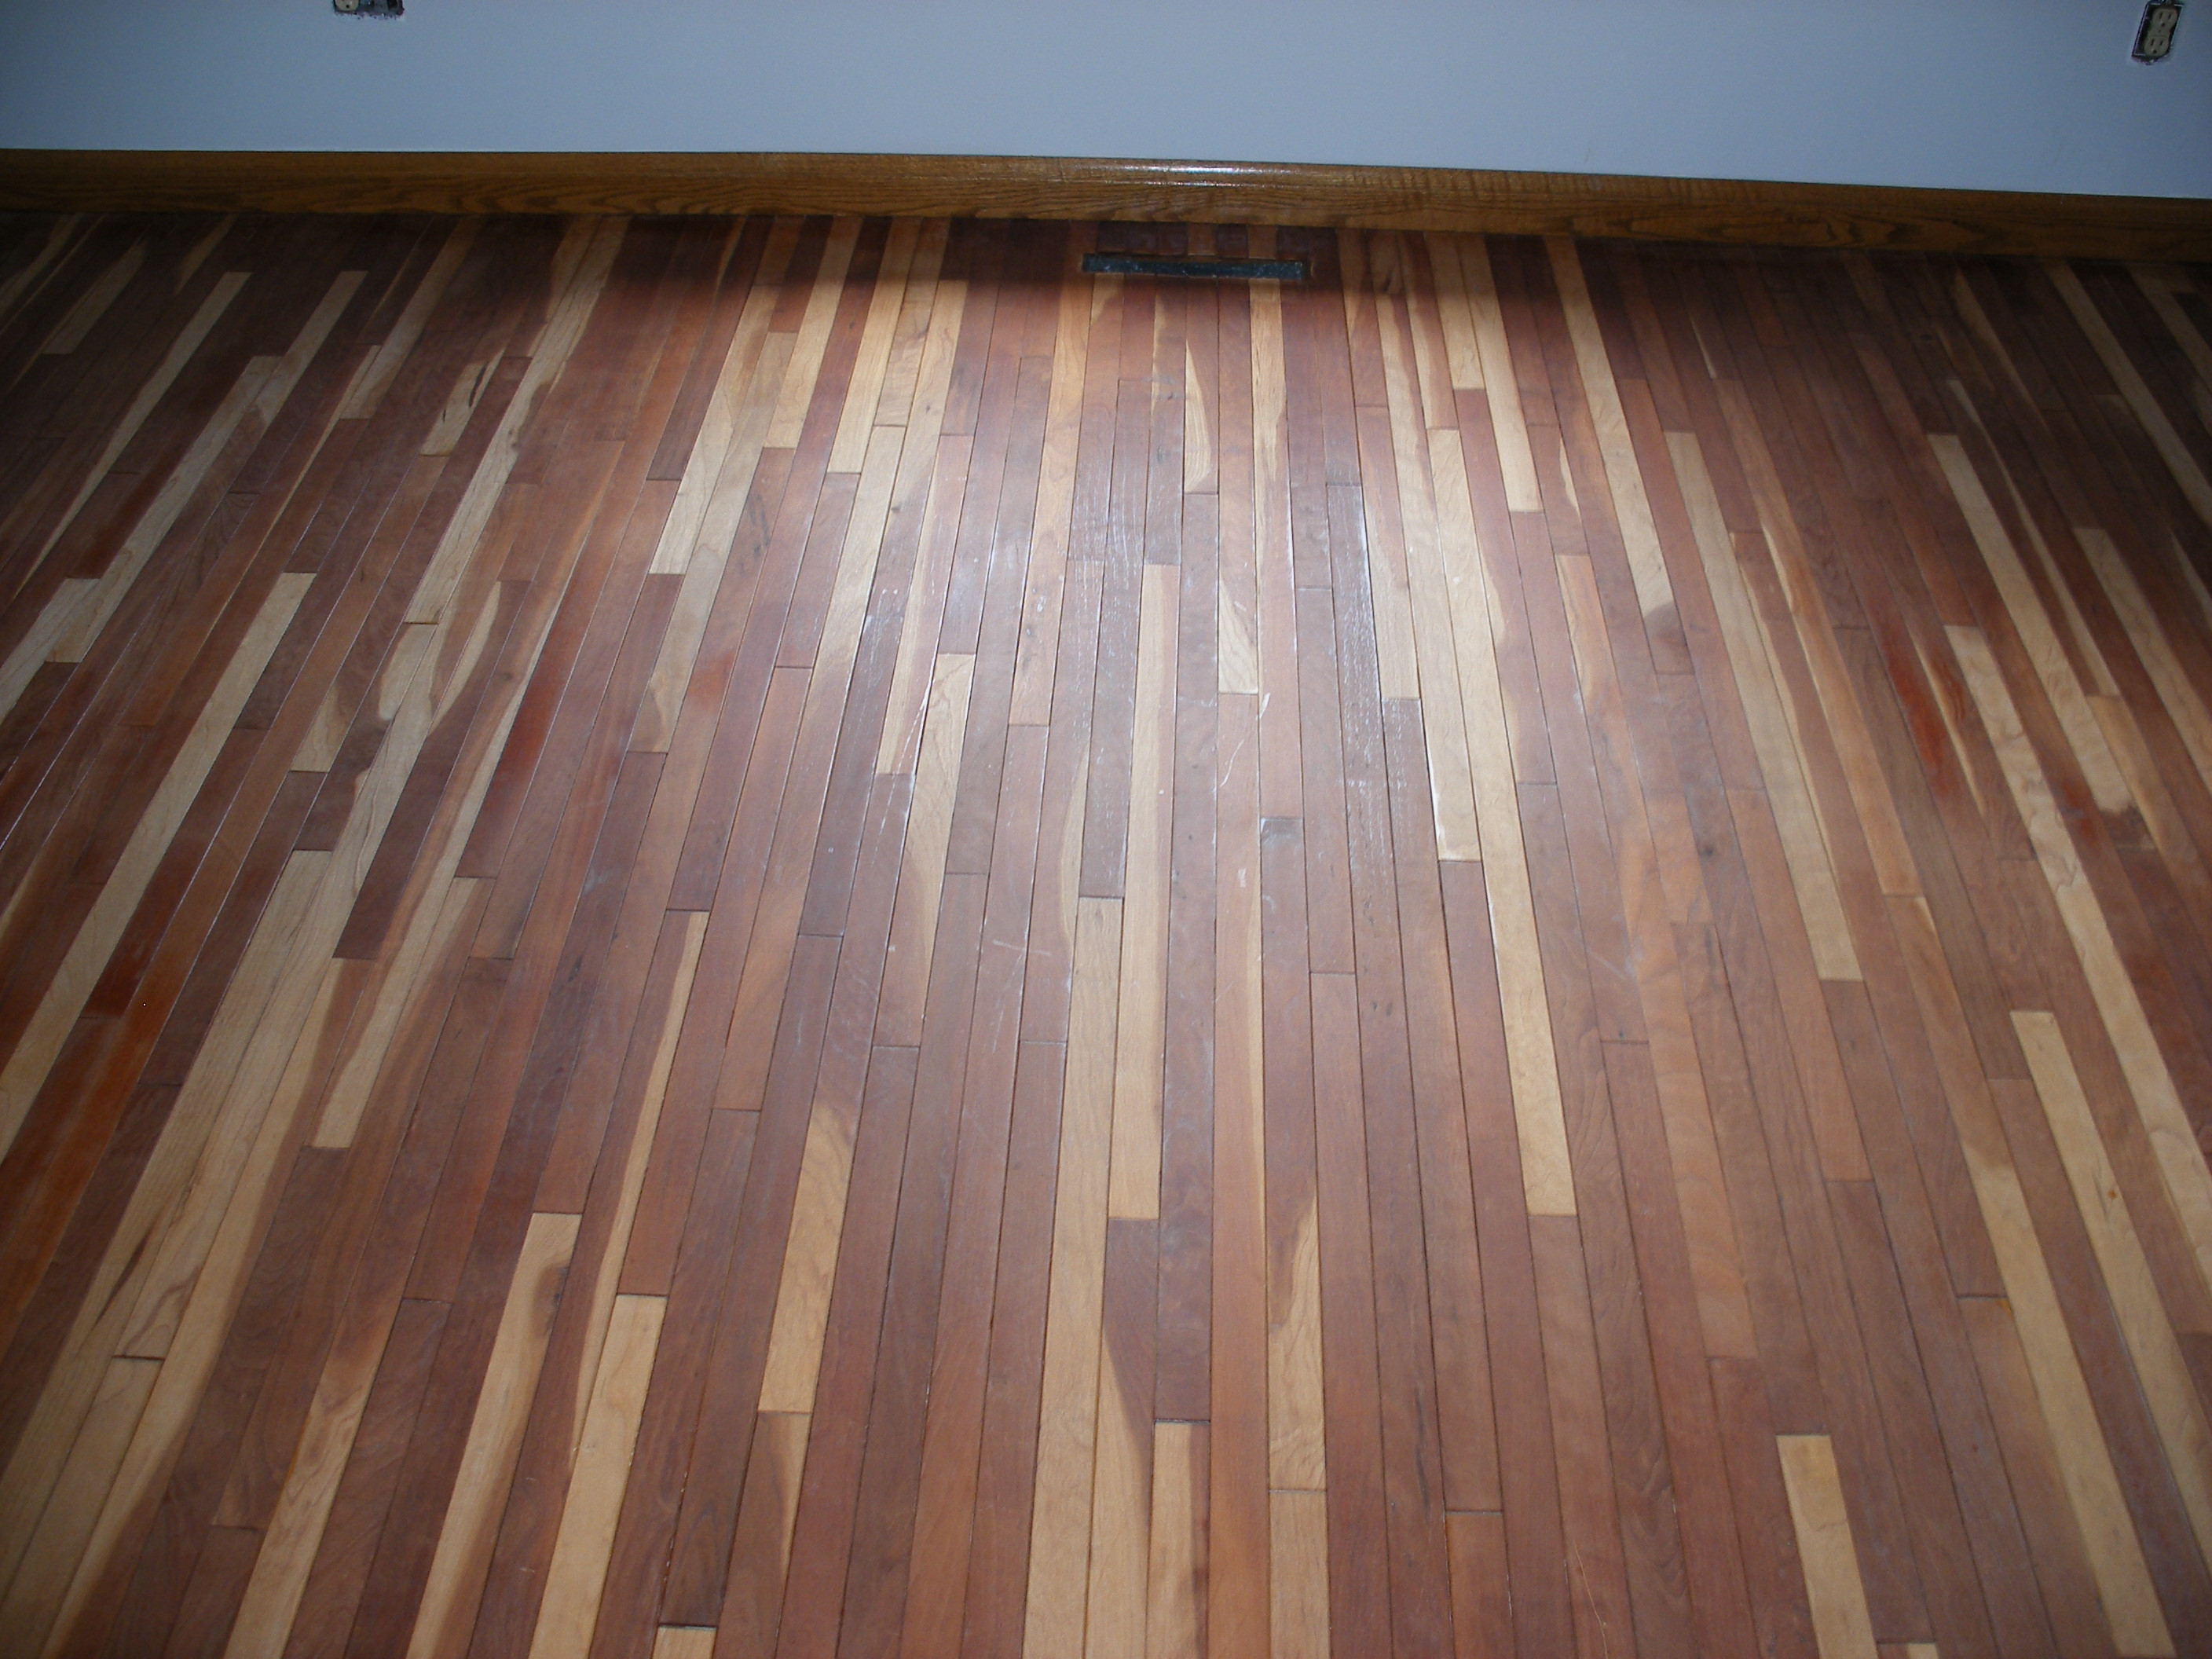 staining hardwood floors yourself of hardwood floor refinishing chicago jacobean stained fir wood floors for hardwood floor refinishing chicago no sand wood floor refinishing in northwest indiana hardwood floors